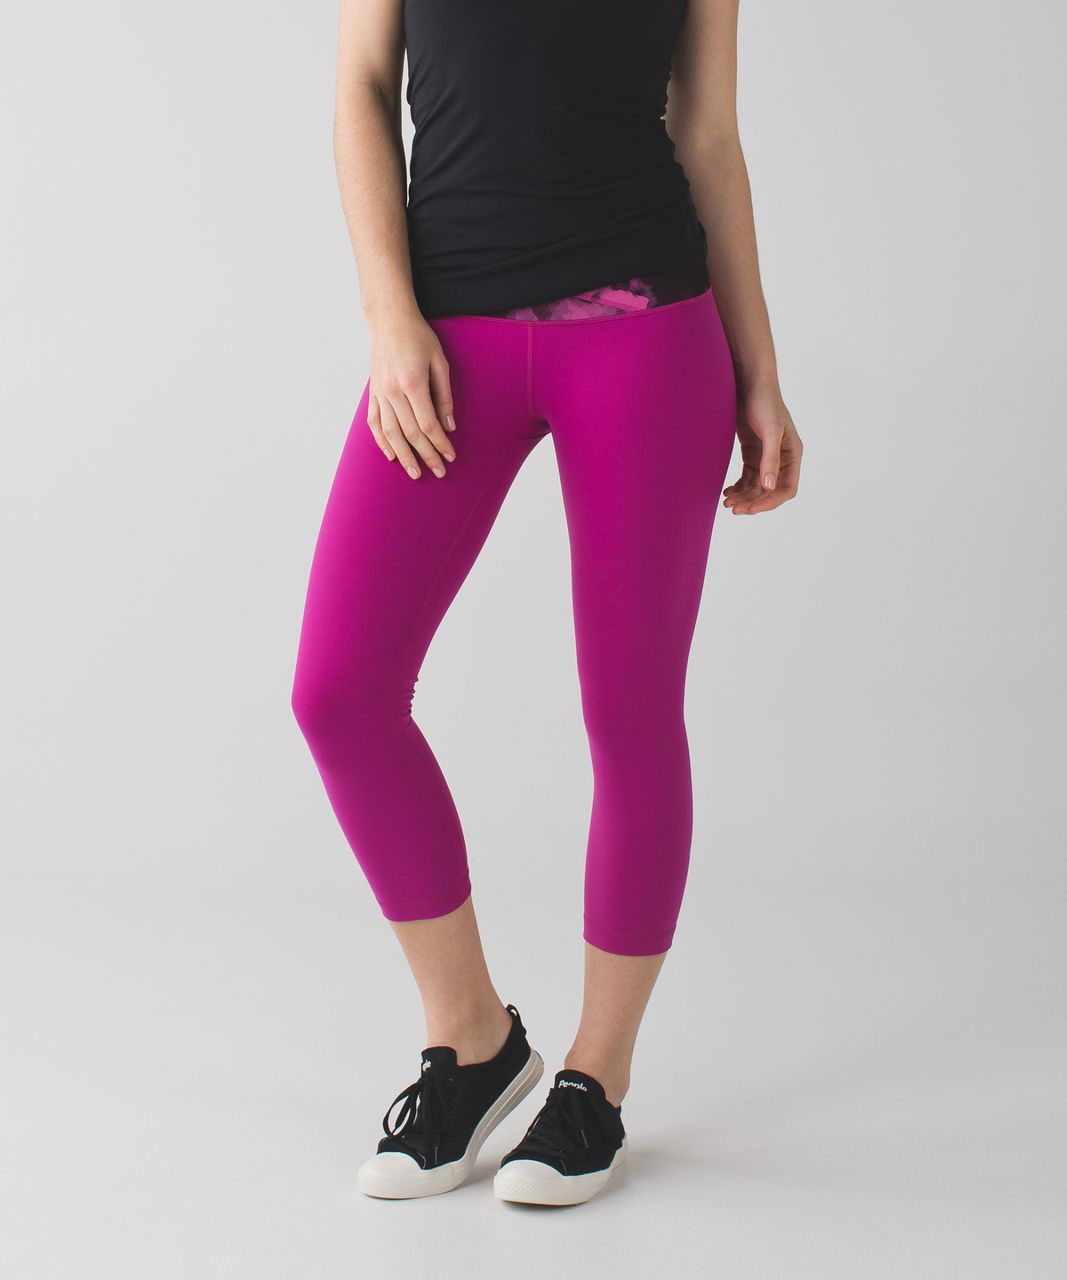 Lululemon Wunder Under Crop (Hi-Rise) *Full-On Luon - Raspberry / Blooming Pixie Raspberry Black